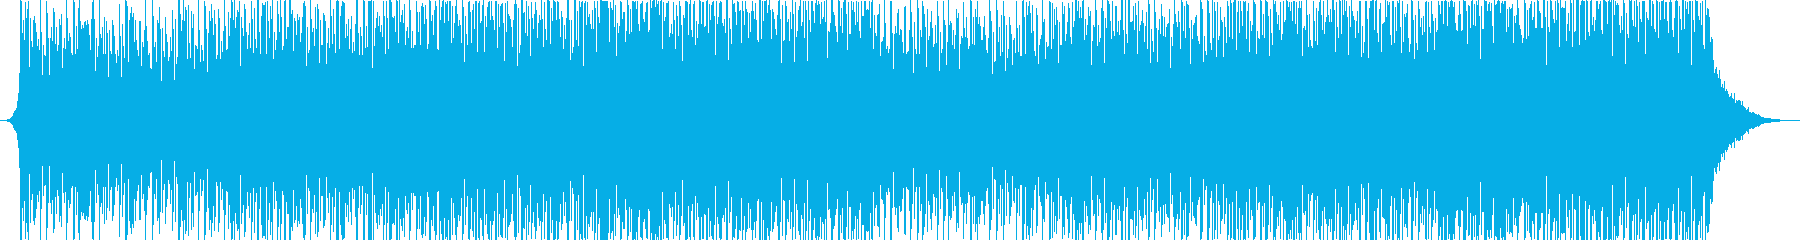 Inspiring ambient house music's reproduced waveform